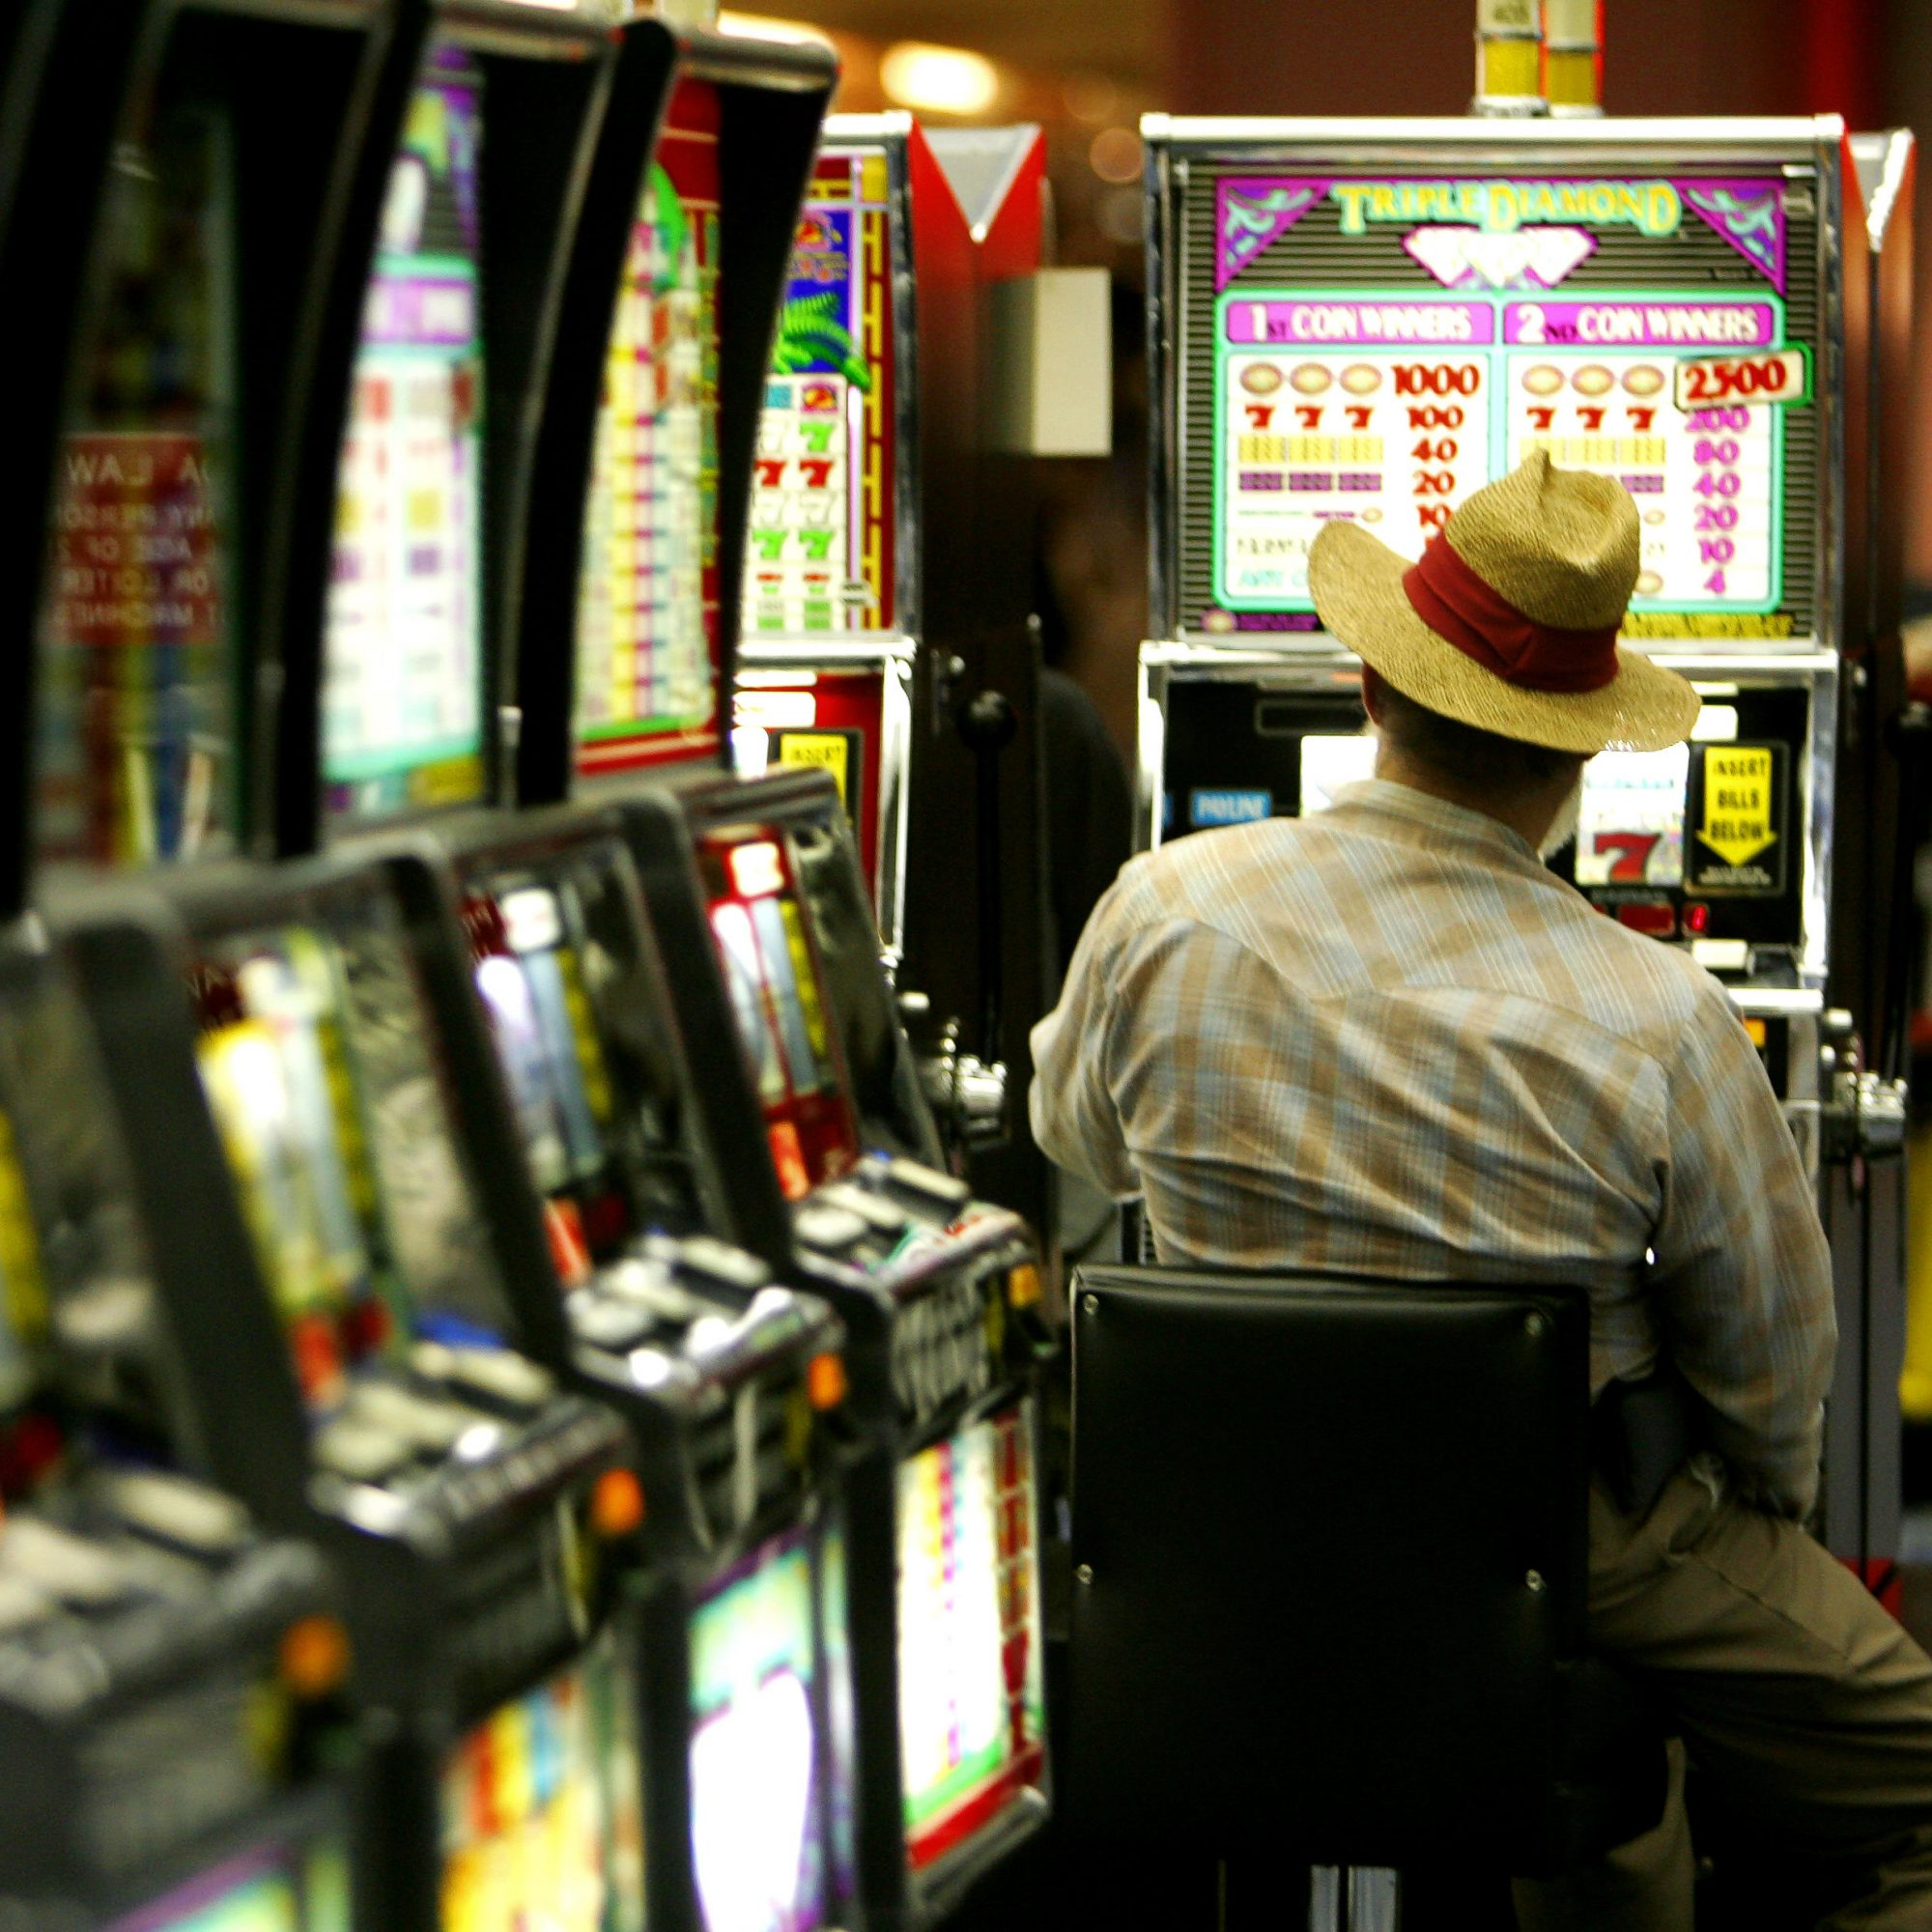 las-vegas-slot-machine-fwx